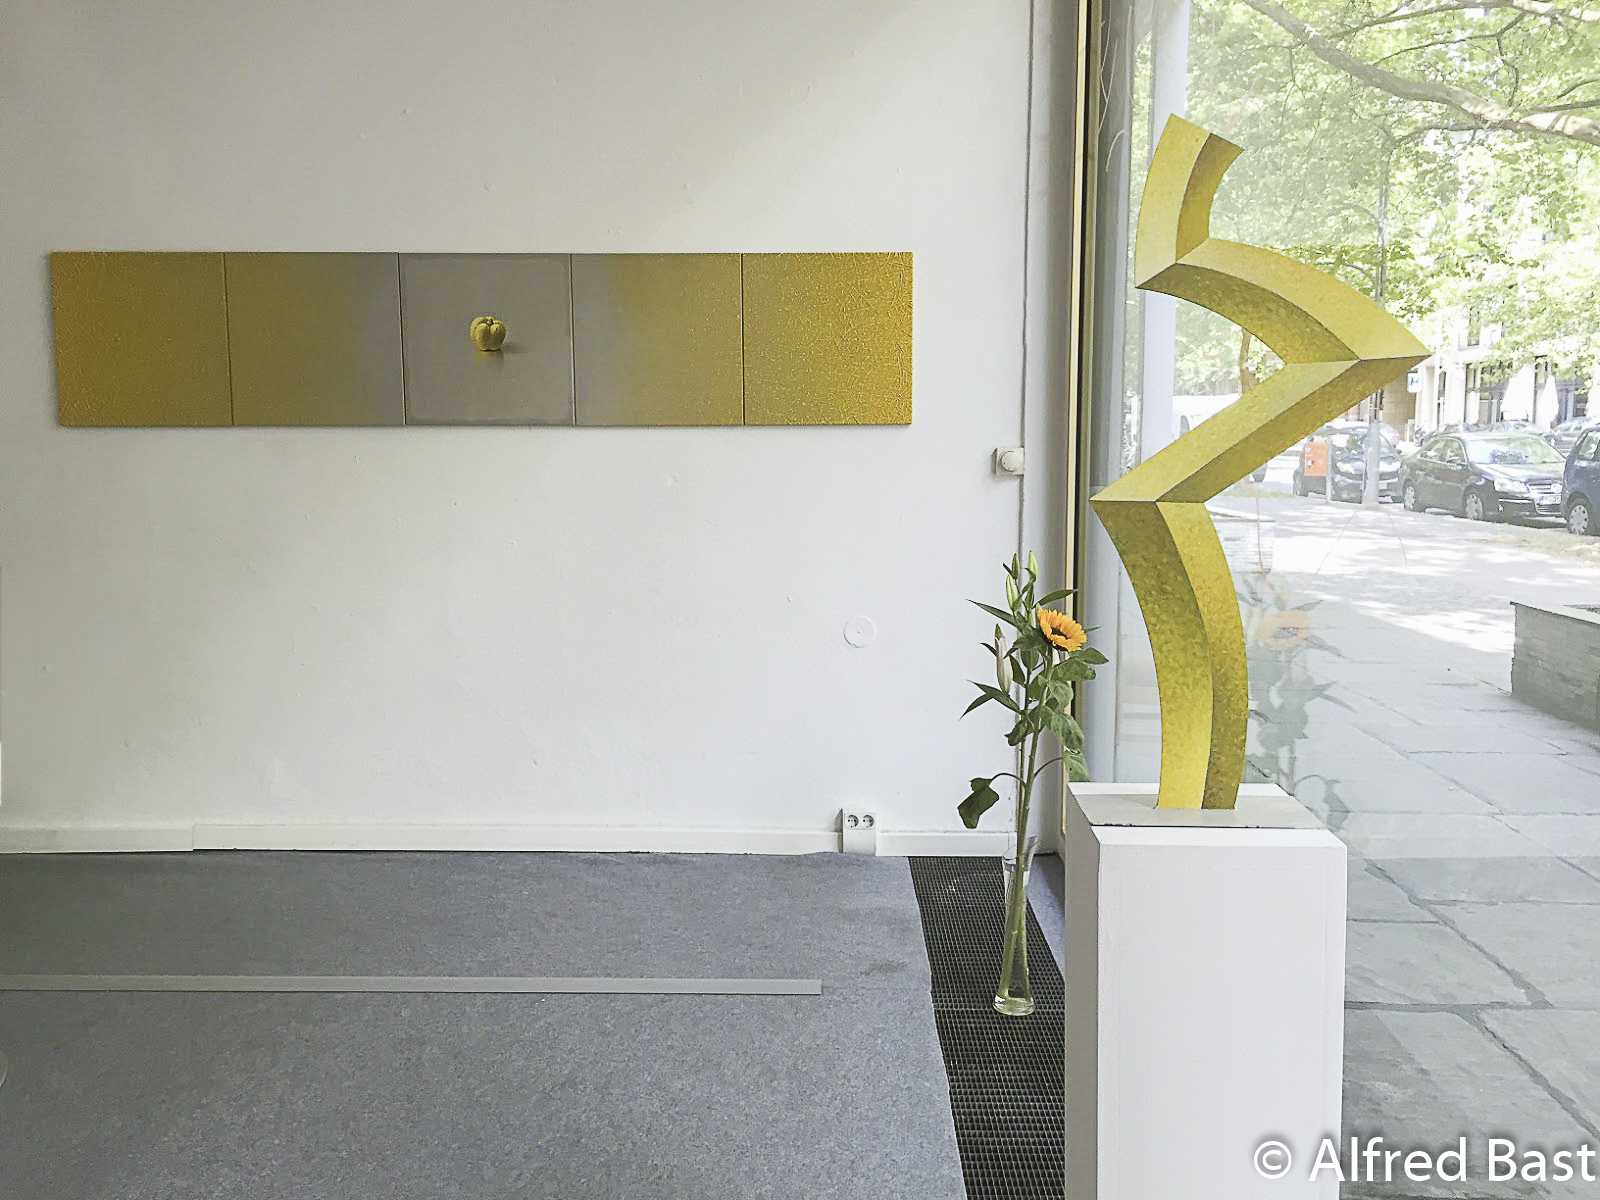 Paintings and sculpture of Alfred Bast, Morgenstern Gallery, Berlin, 2015